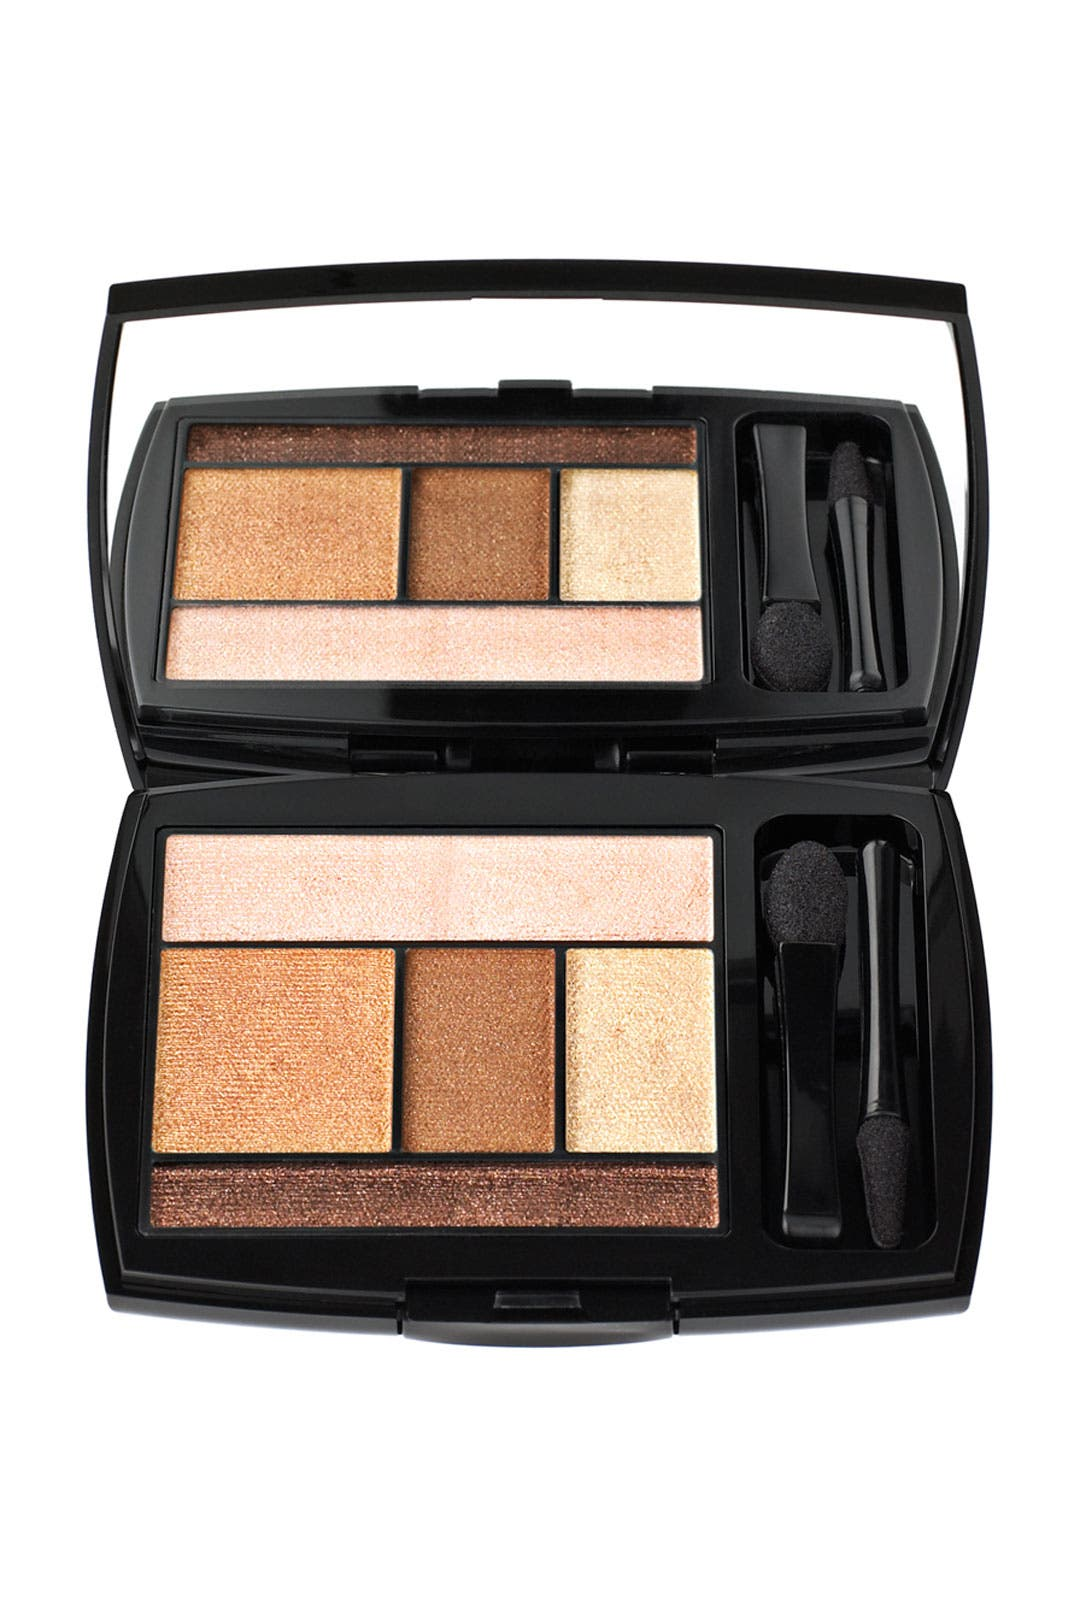 Bronze Amour Color Design 5 Shadow and Liner Palette by LANCÔME